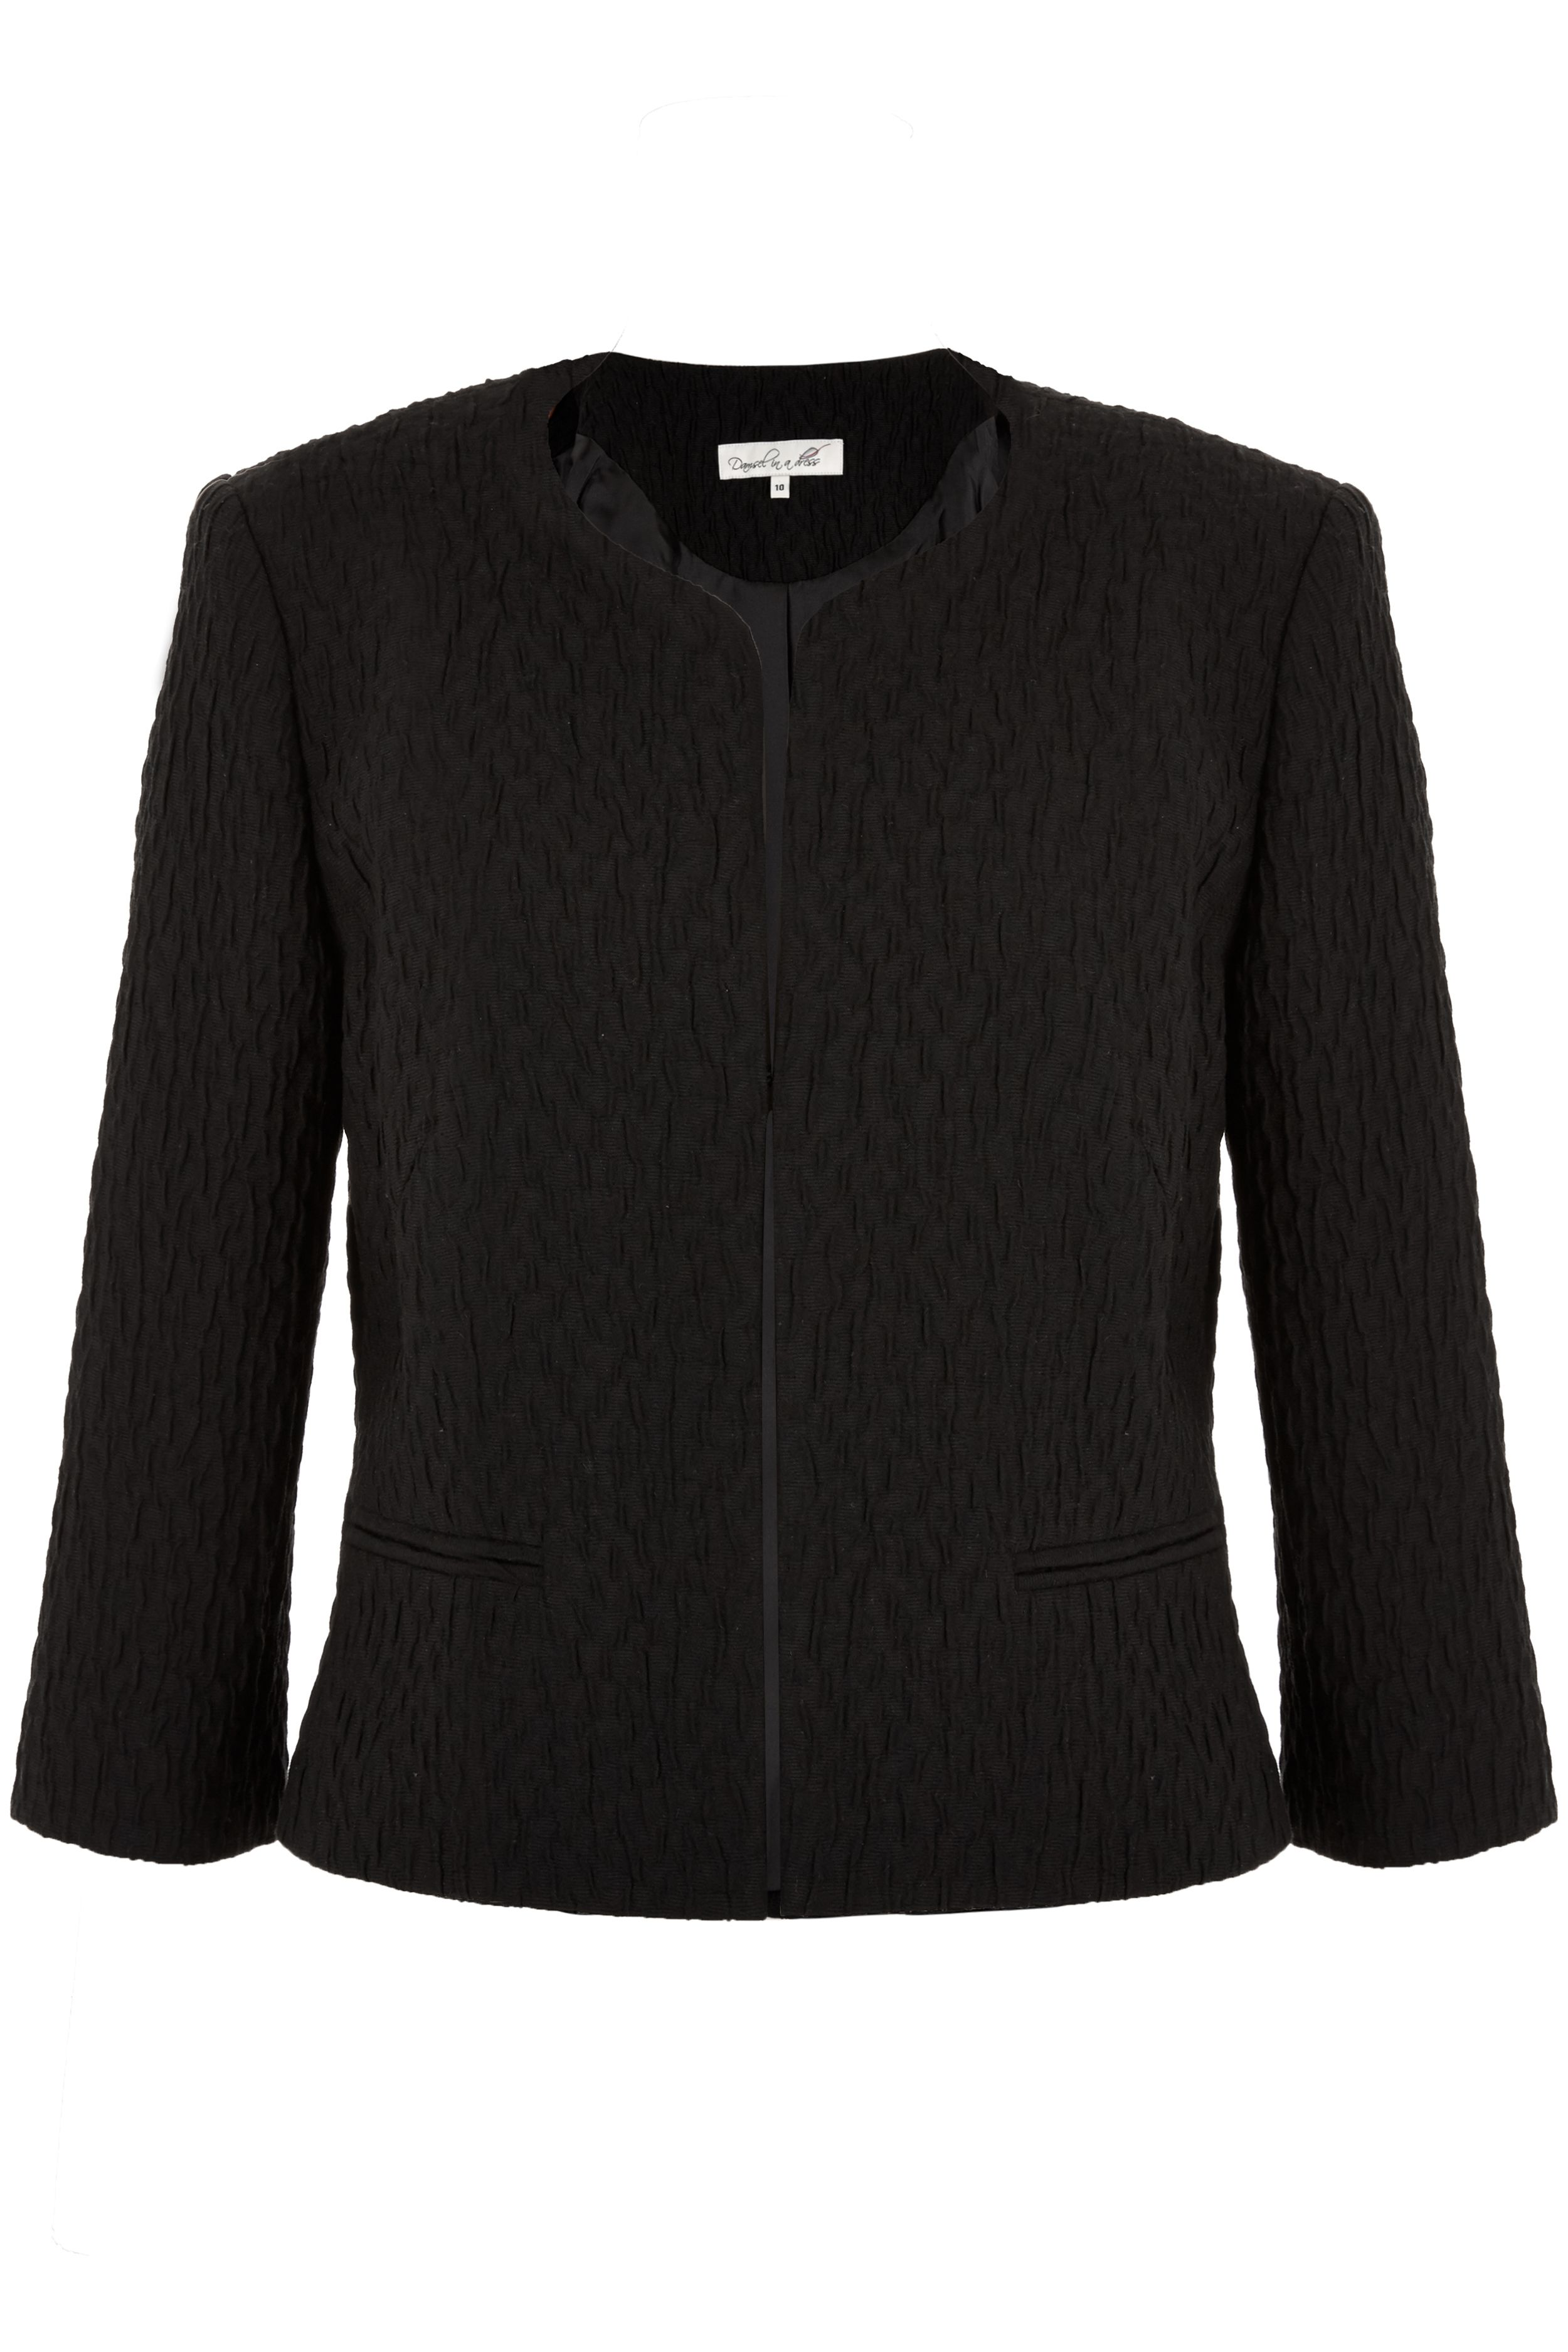 Damsel in a Dress Jentri Jacket, Black